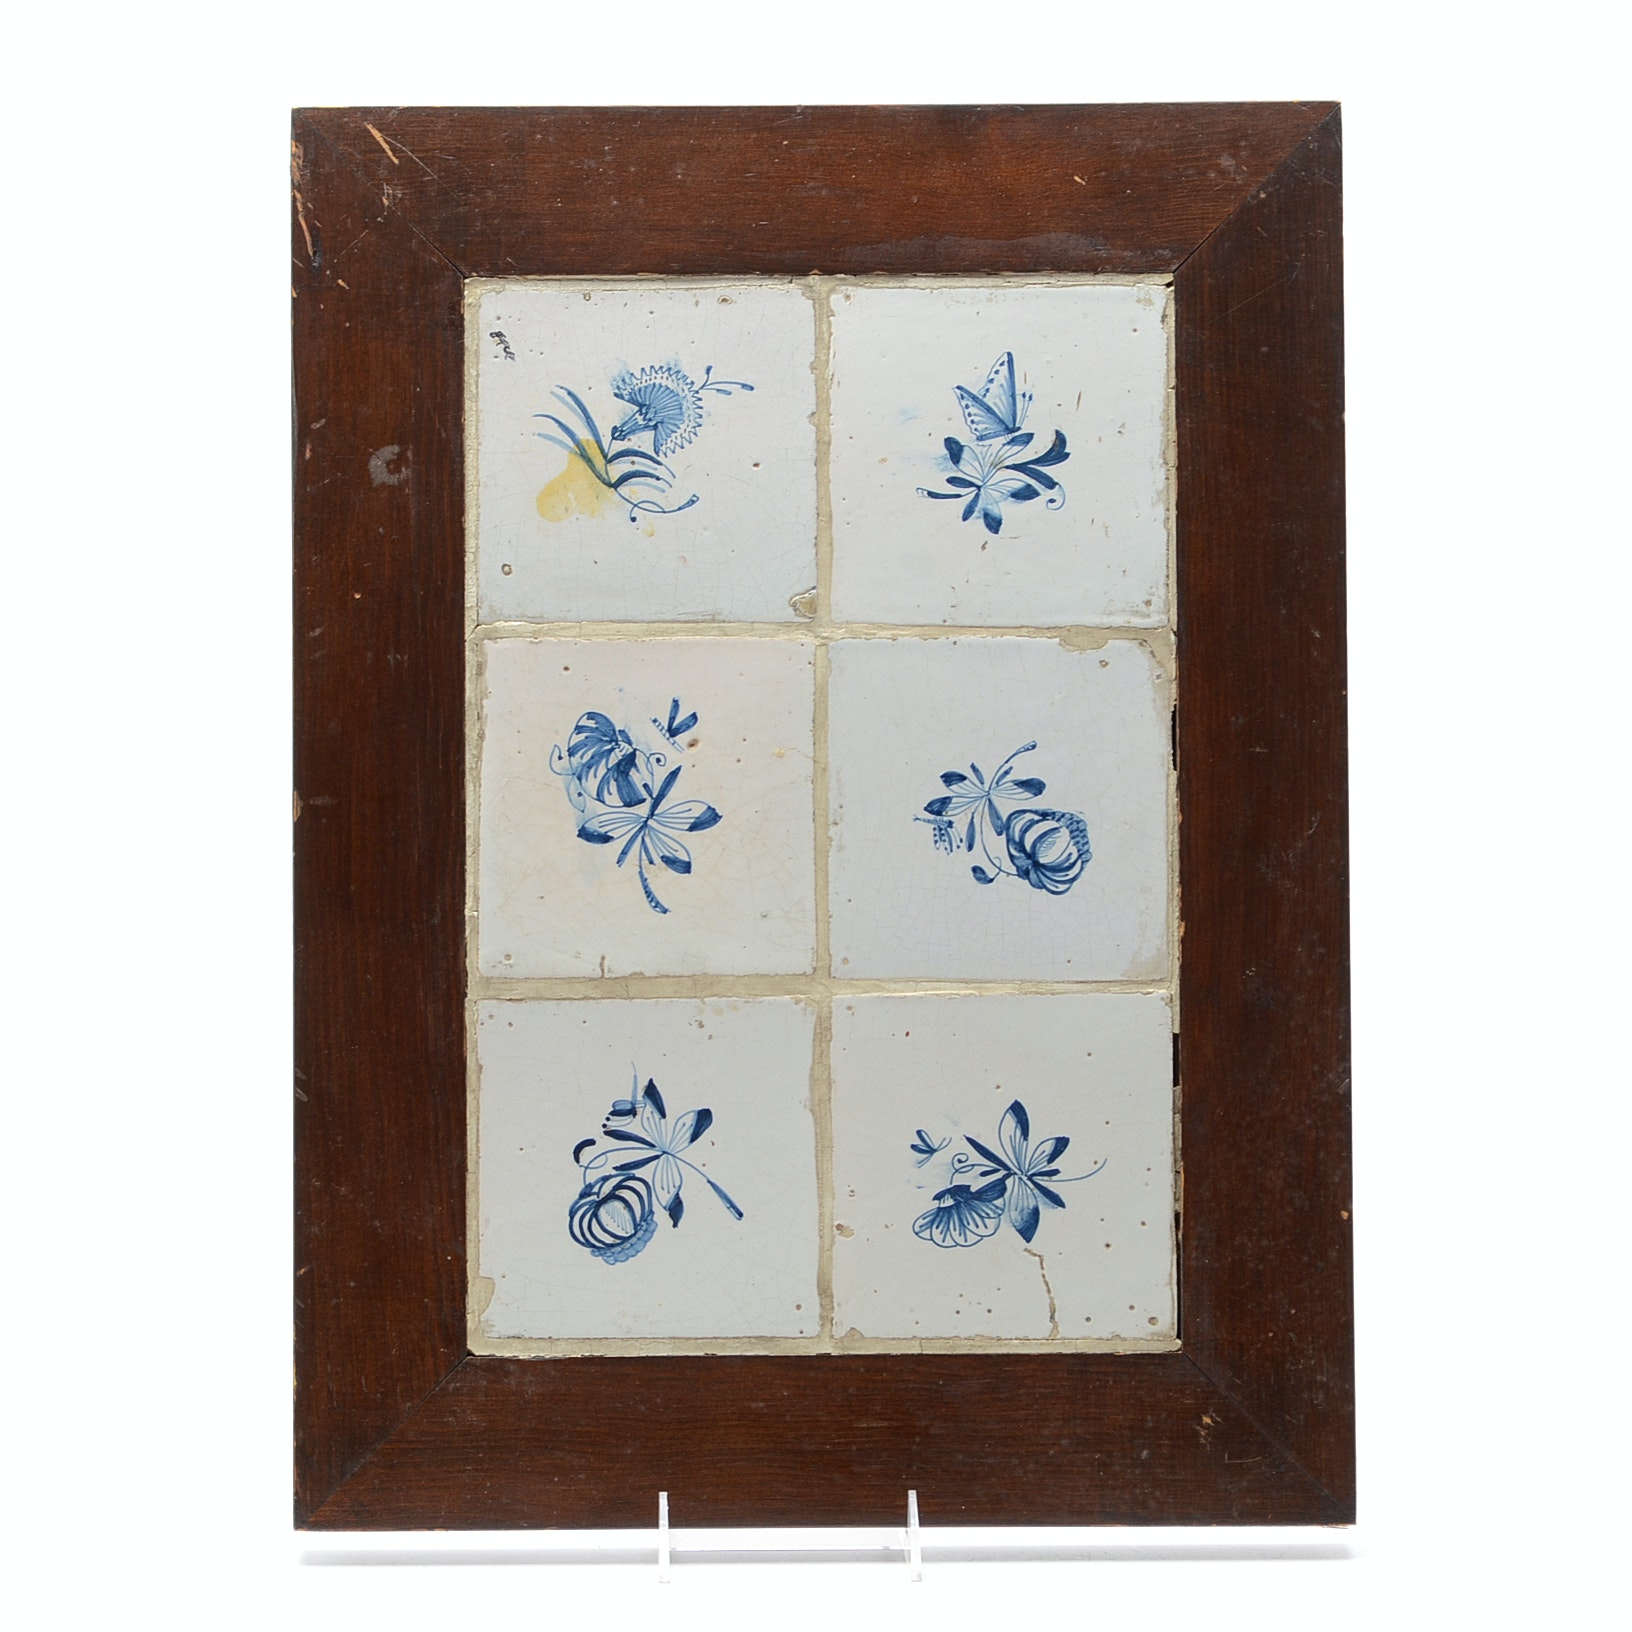 Antique Faïence Hand-Painted Floral Tile Composition